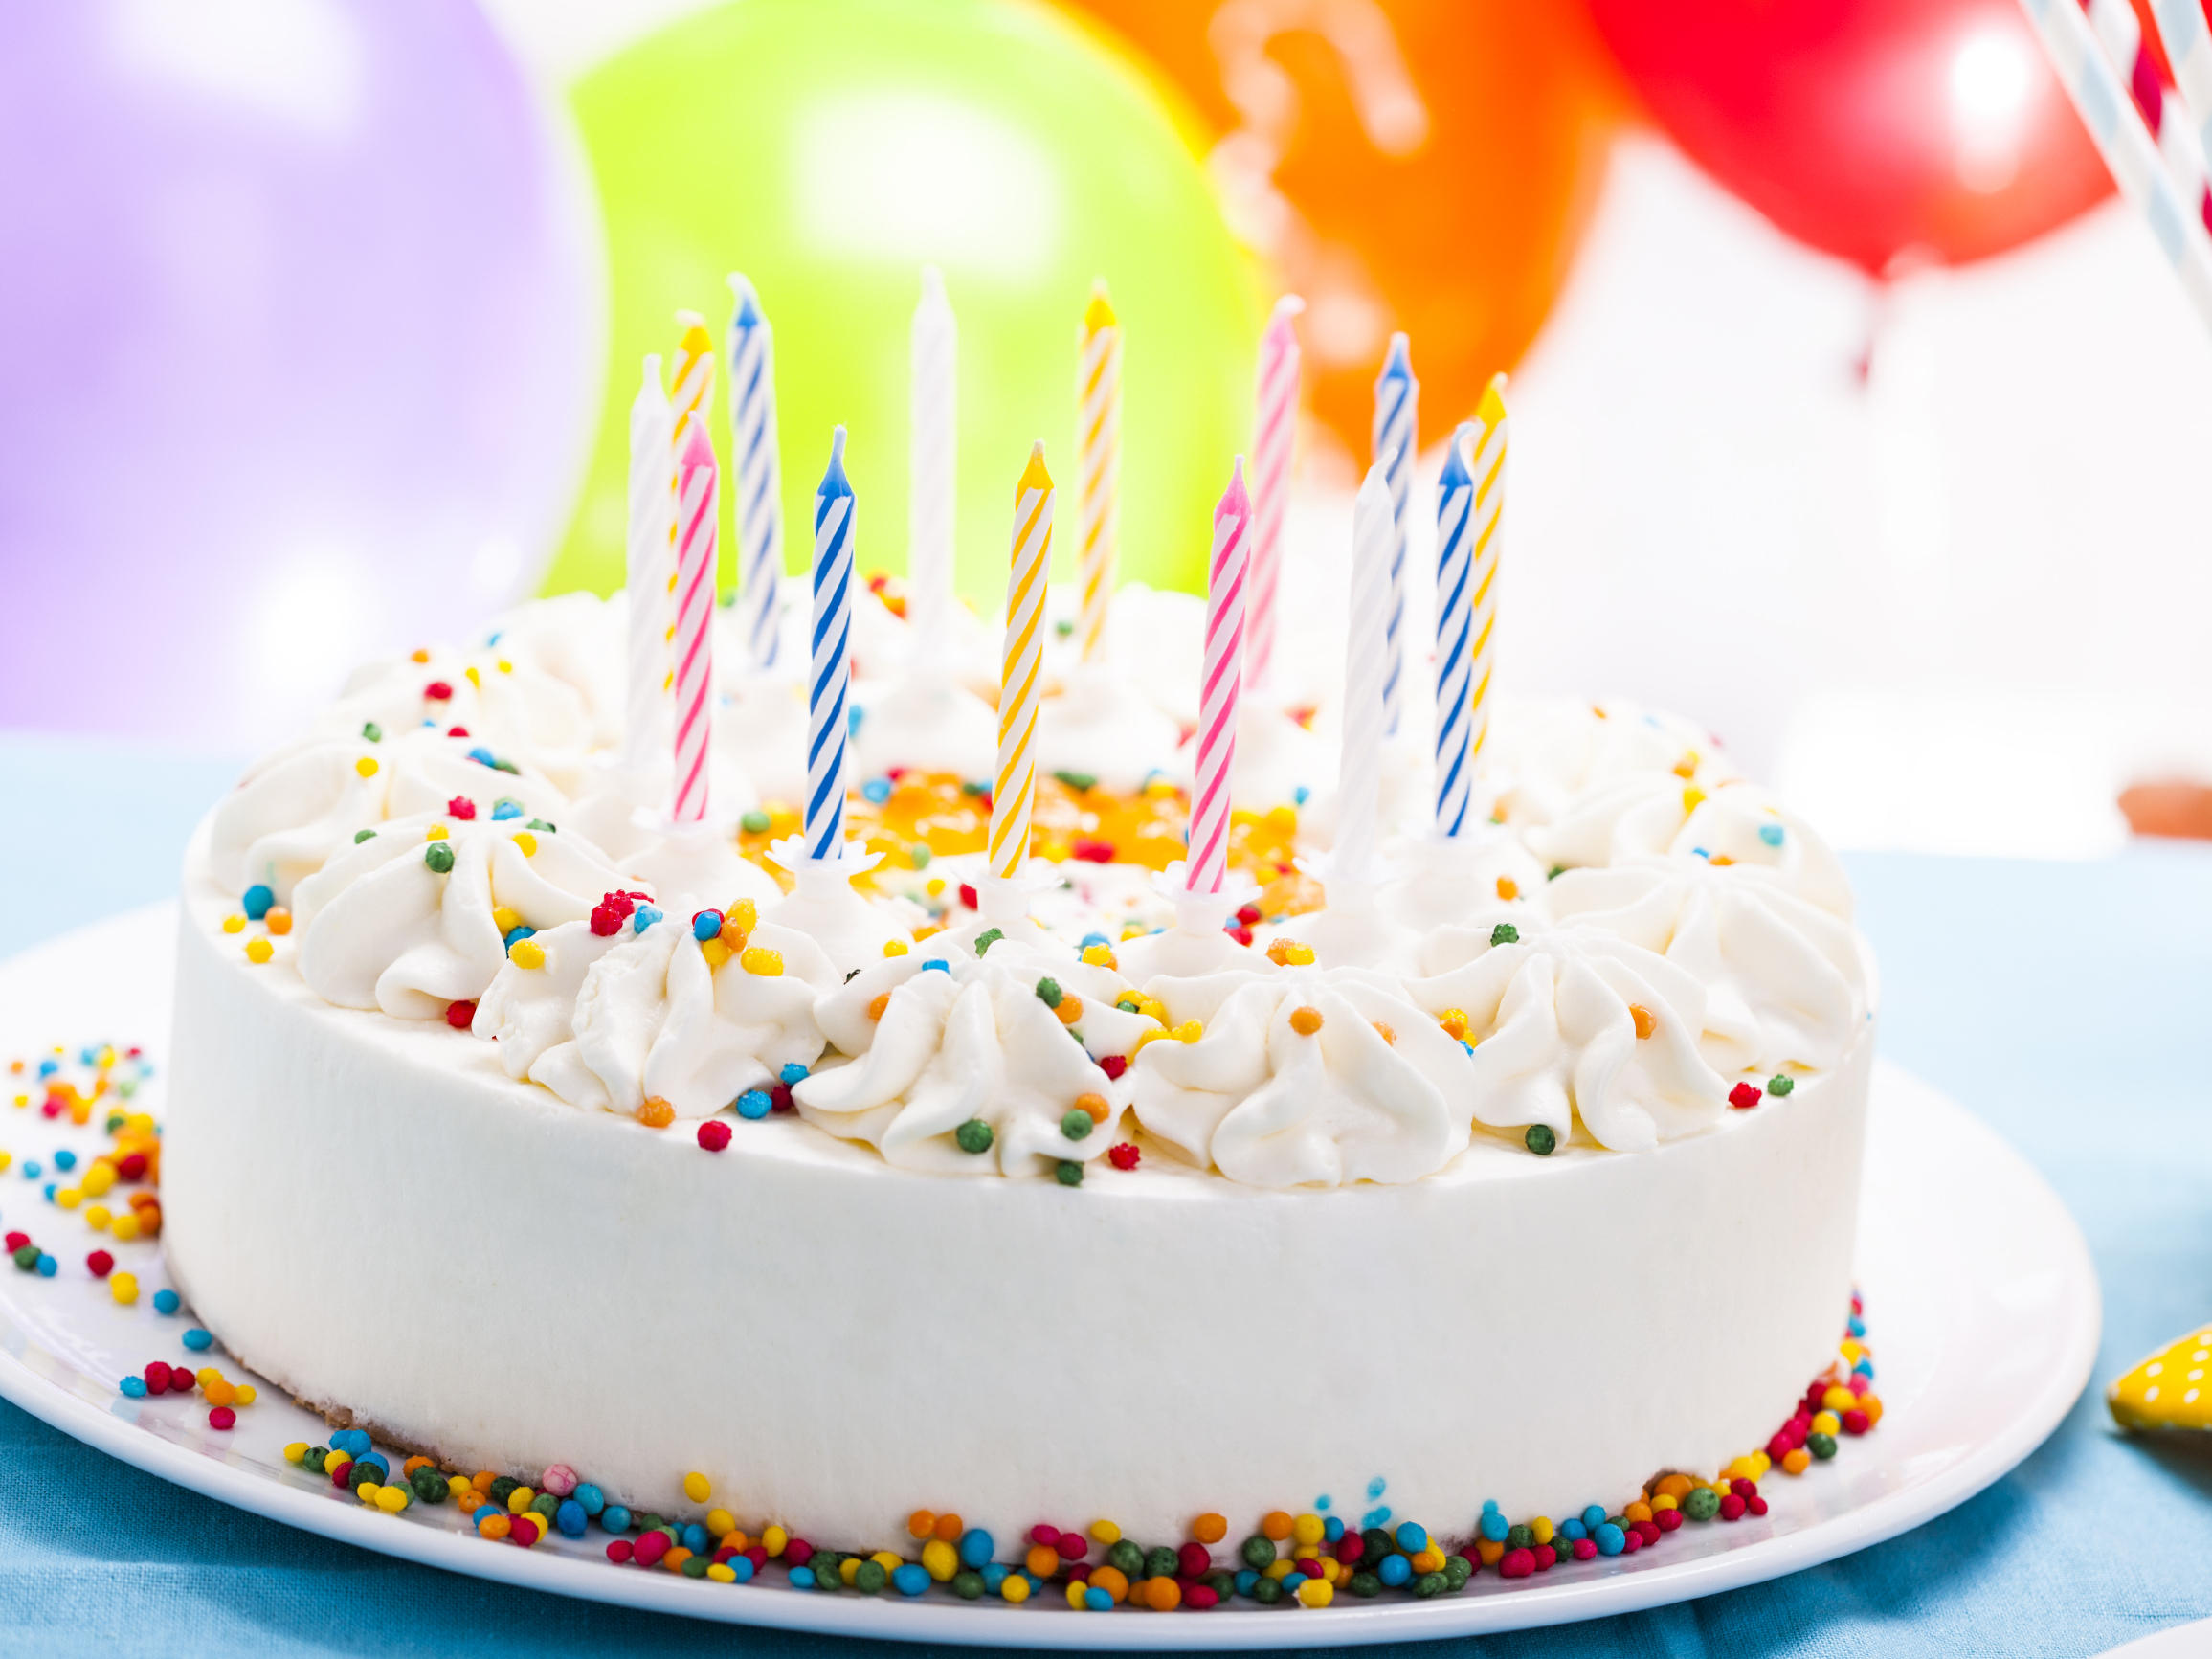 Happy Birthday To Us All Judge Rules Tune Is Public Domain Knkx